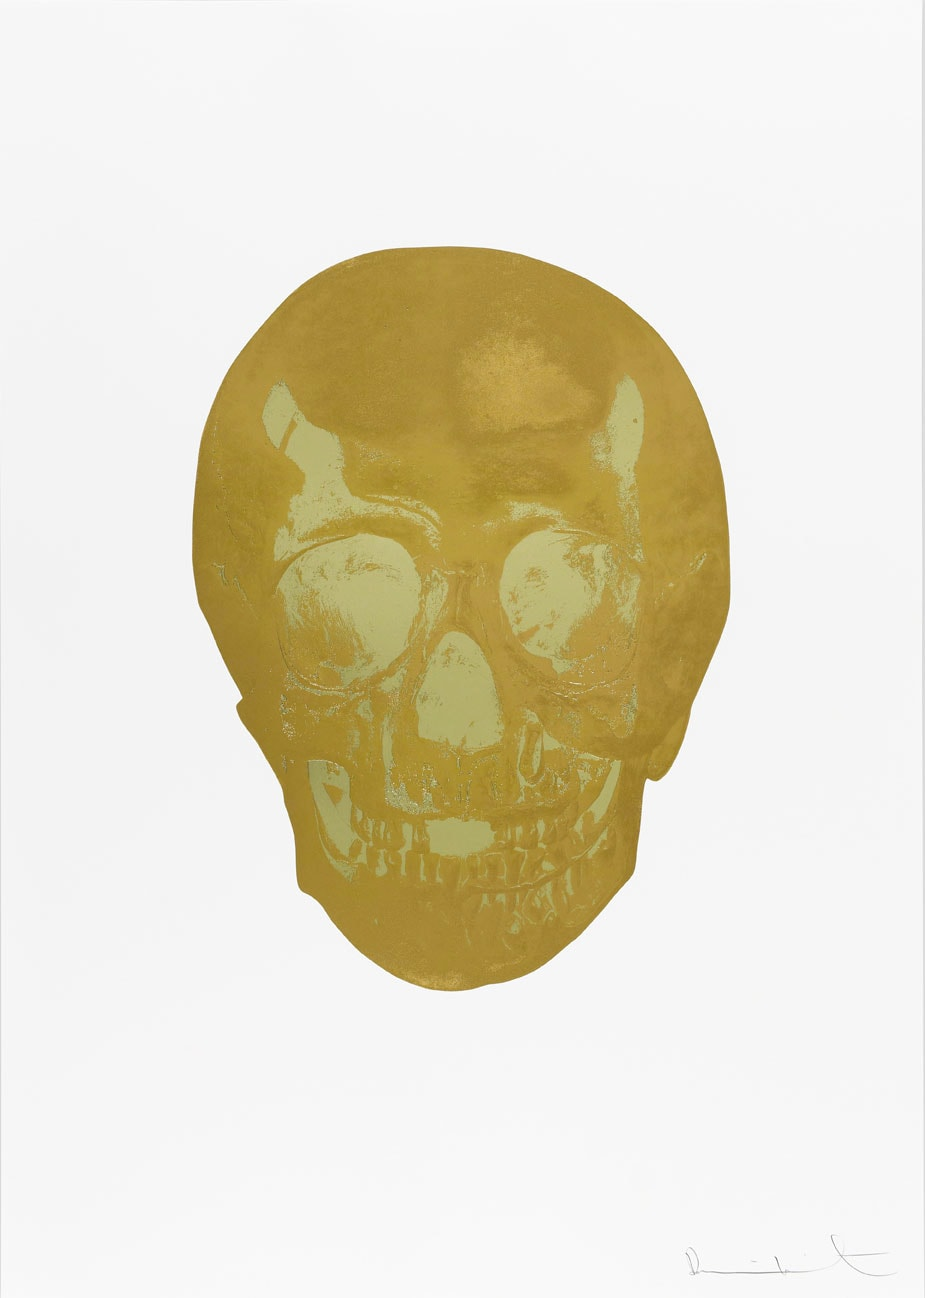 Damien Hirst Death Or Glory Autumn Gold/Cool Gold Glorious Skull, 2011 2 colour foil block on 300gsm Arches 88 archival paper. Signed and numbered. Published by Paul Stolper and Other Criteria. White aluminium powder coated frame. 72 x 51 cm; Framed 76.8 x 55.8 cm OC8387 Edition of 2